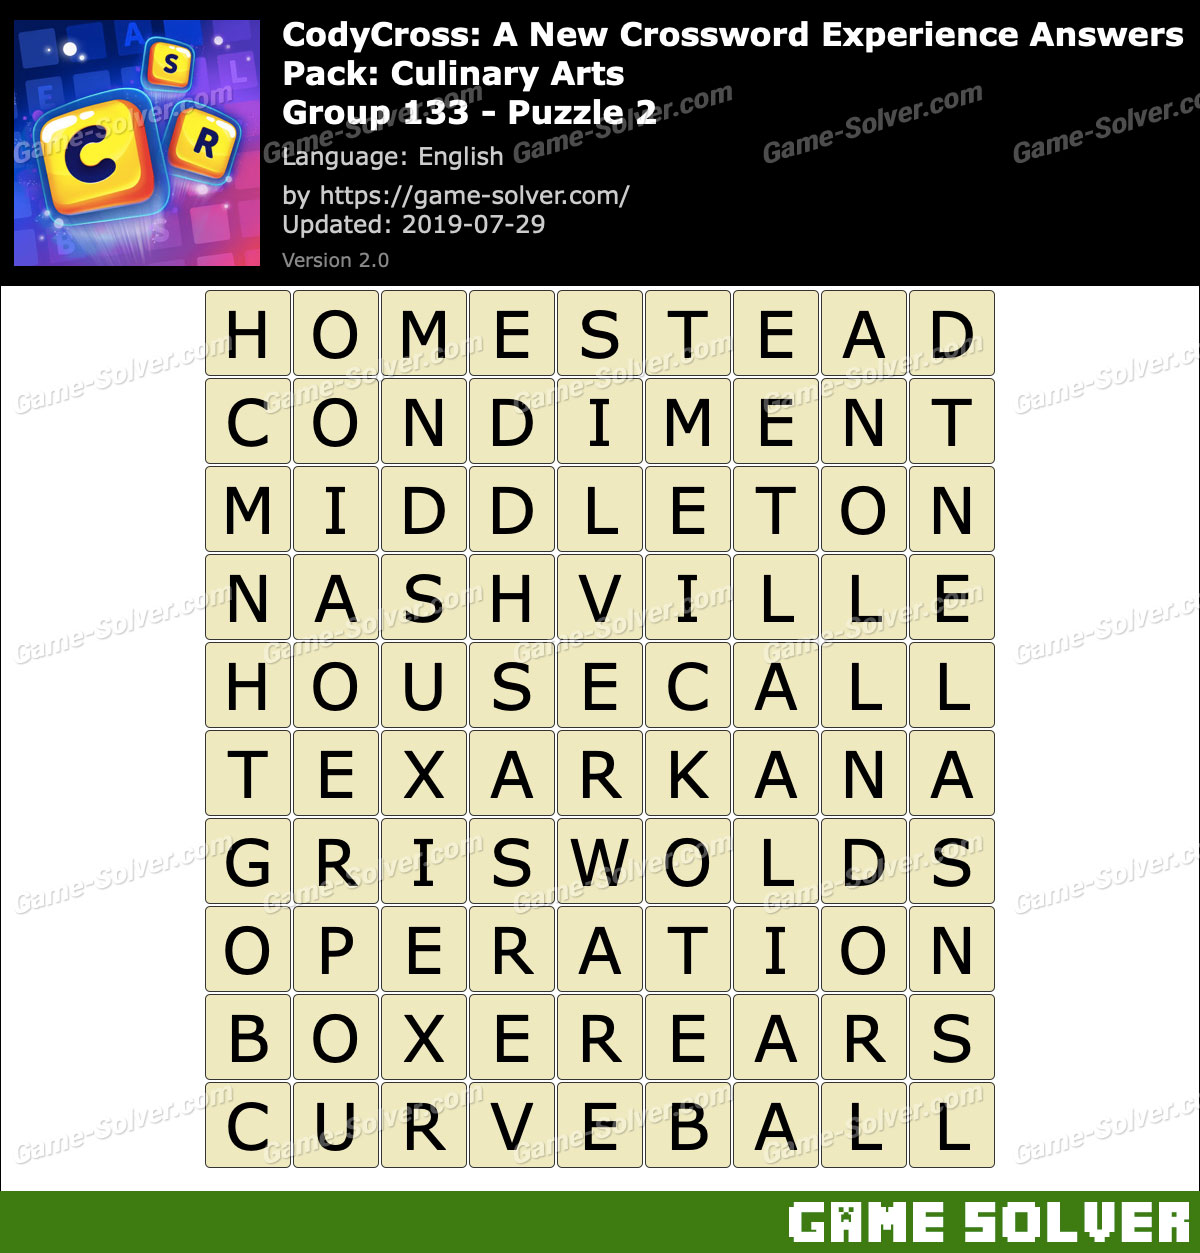 CodyCross Culinary Arts Group 133-Puzzle 2 Answers